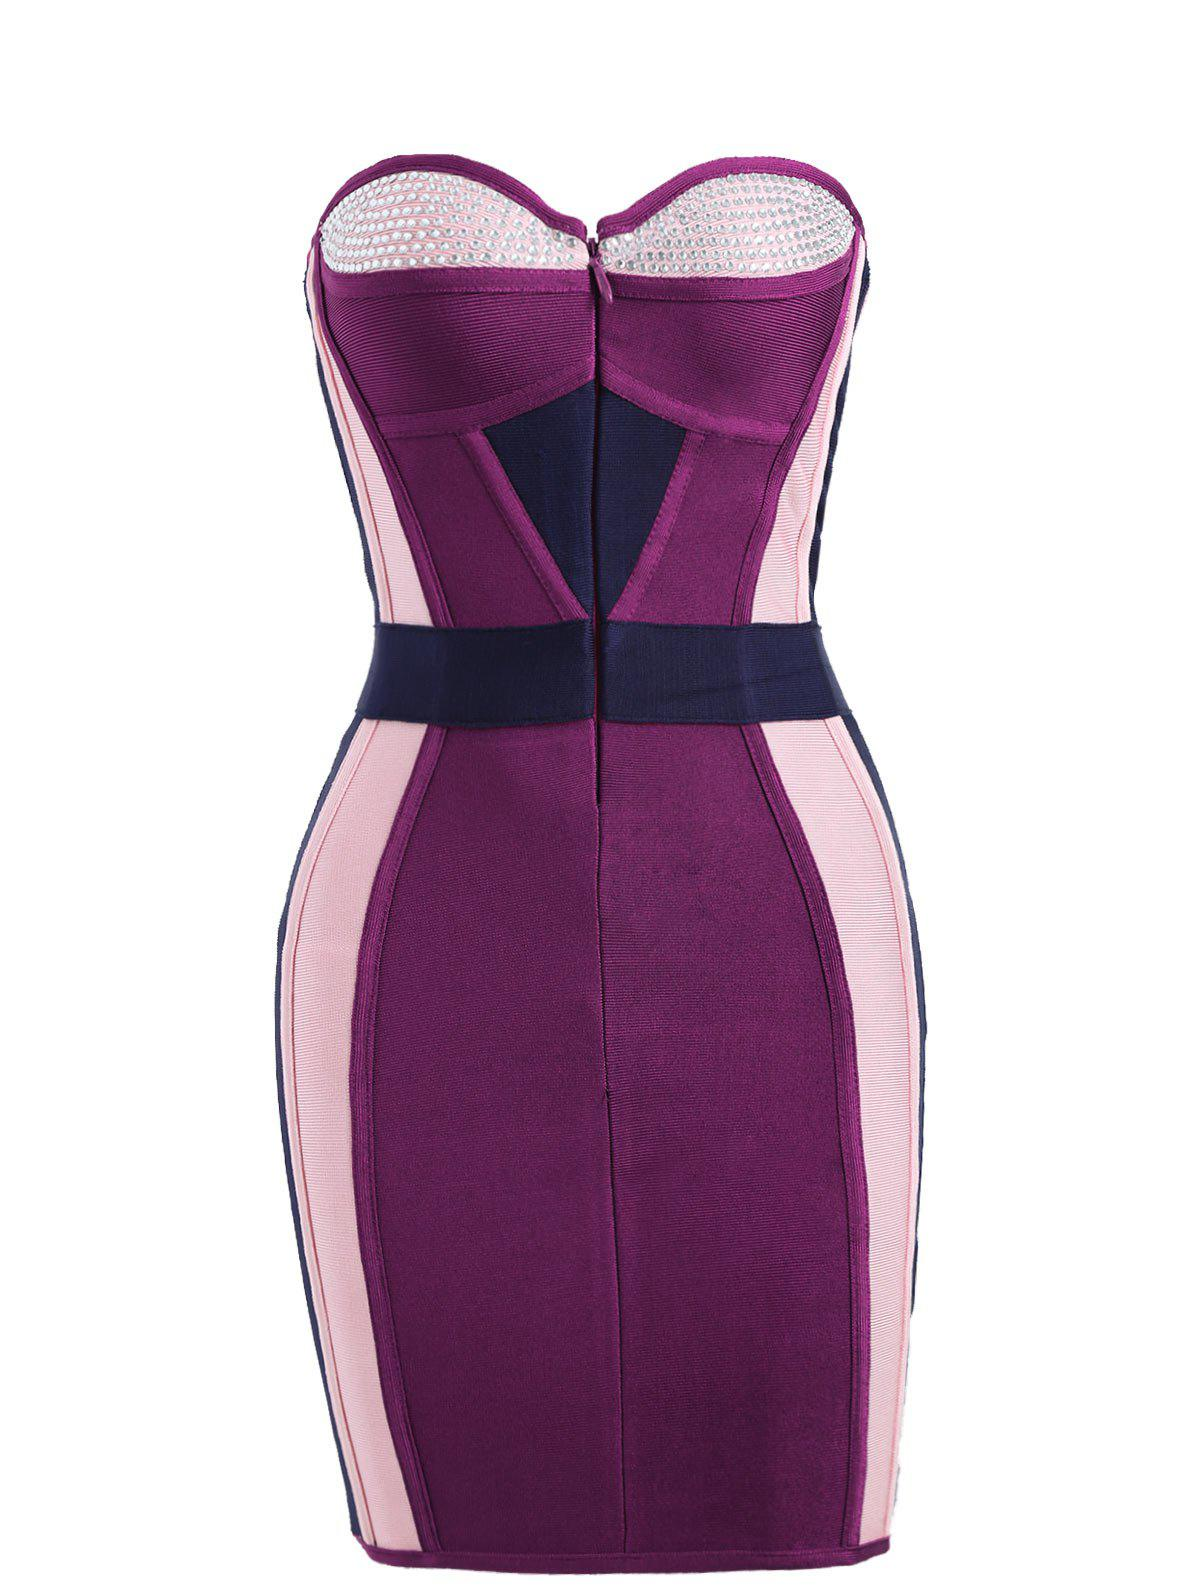 Rhinestone Color Block Tube Bandage Dress - PURPLISH RED M